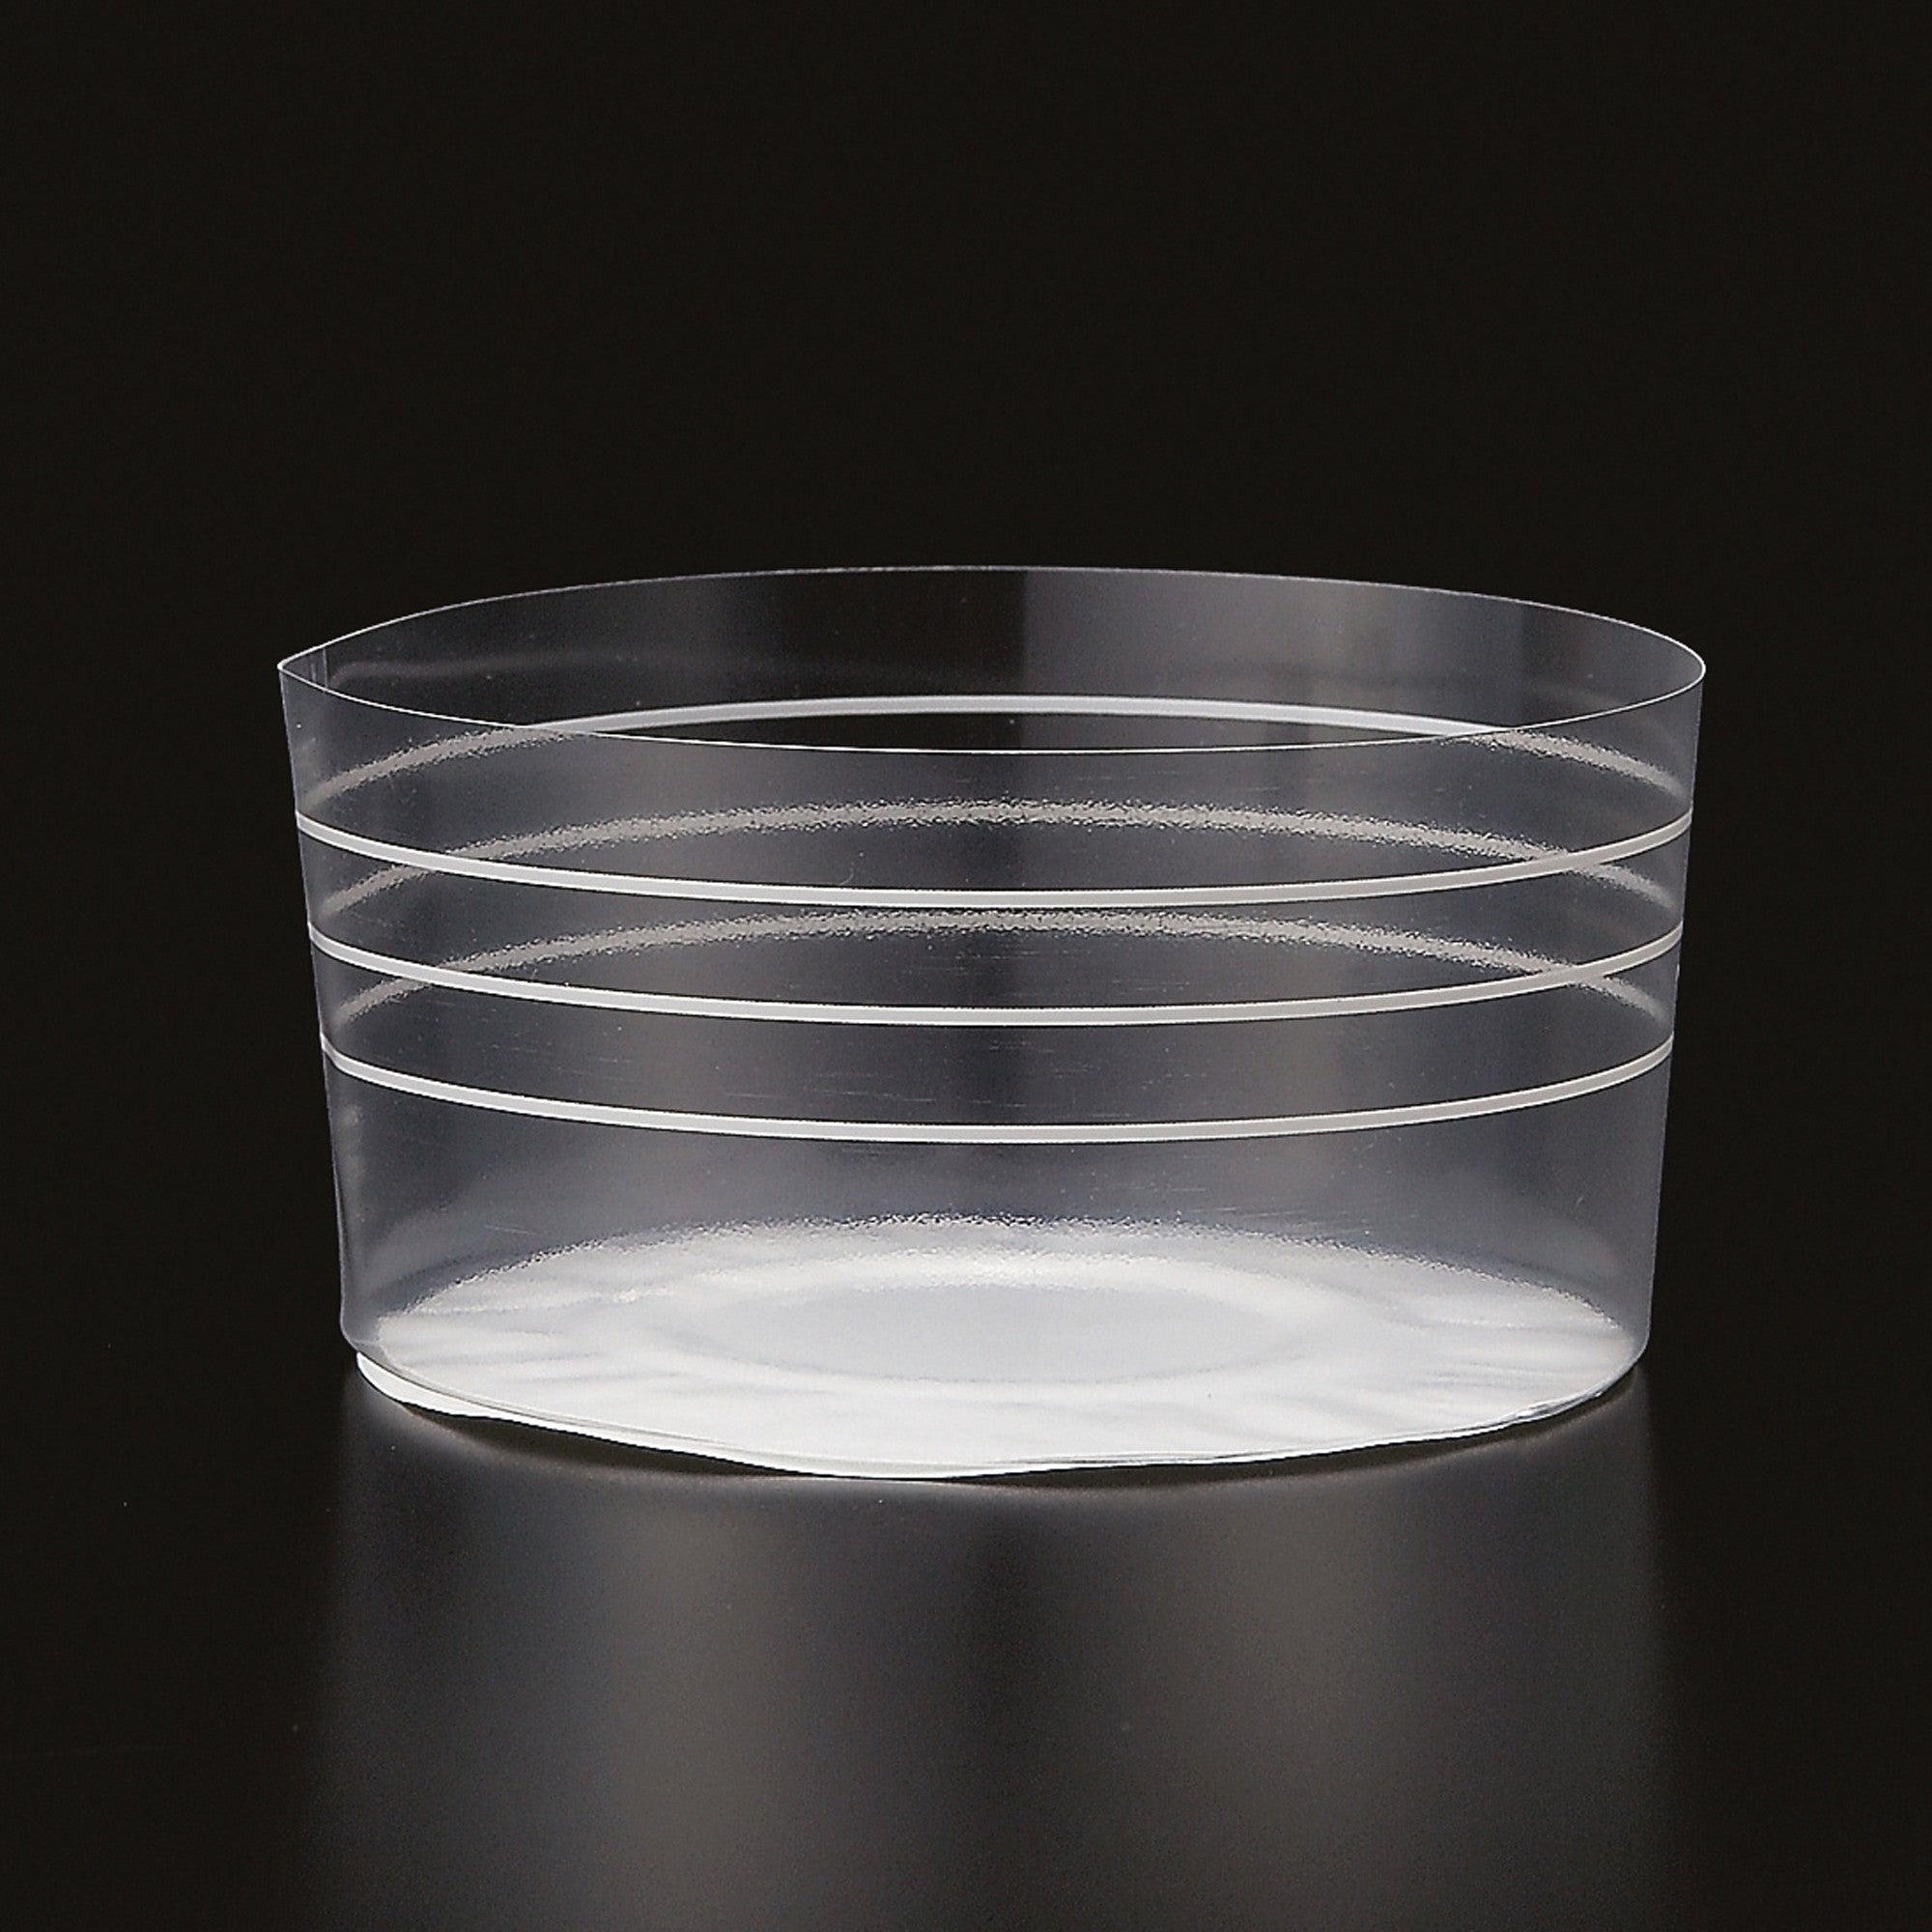 Plastic Baking Cups, CK802 - Welcome Home Brands